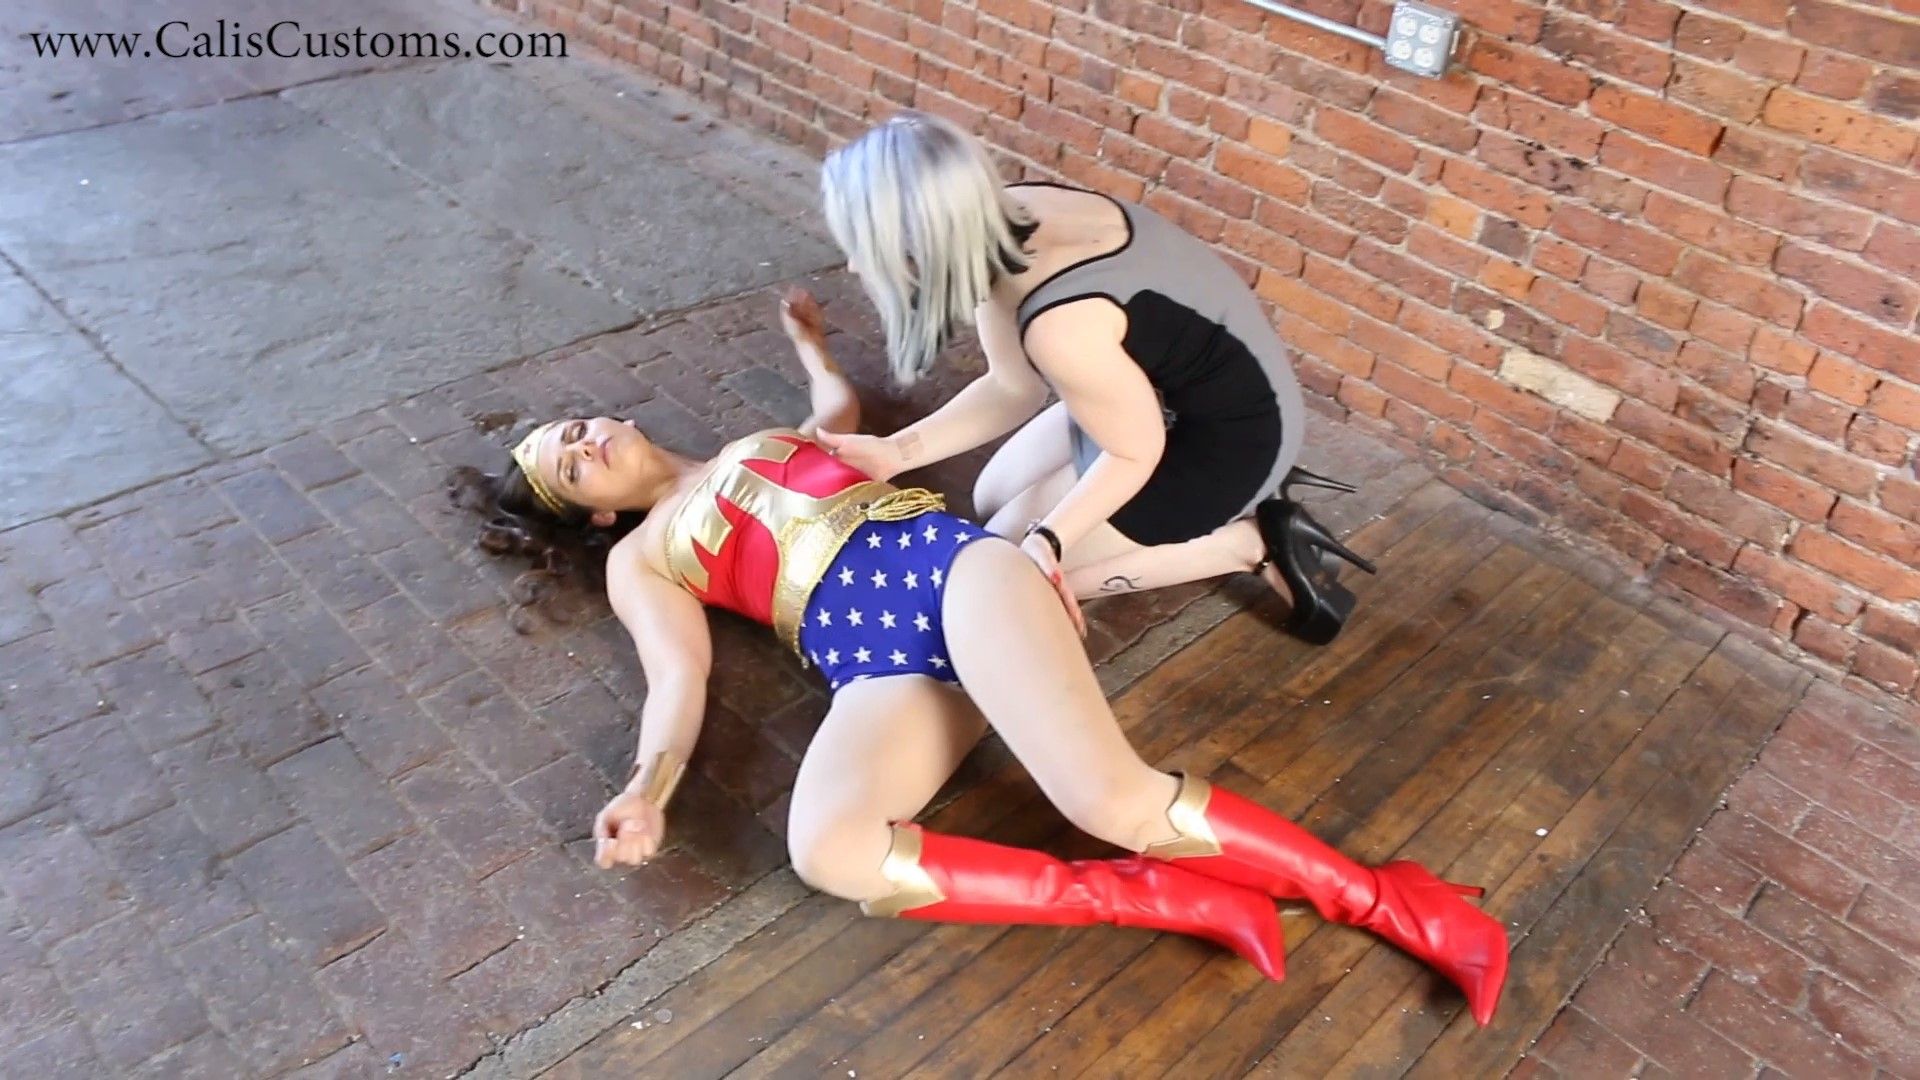 CALI The Wonder Woman KO Trap (34)